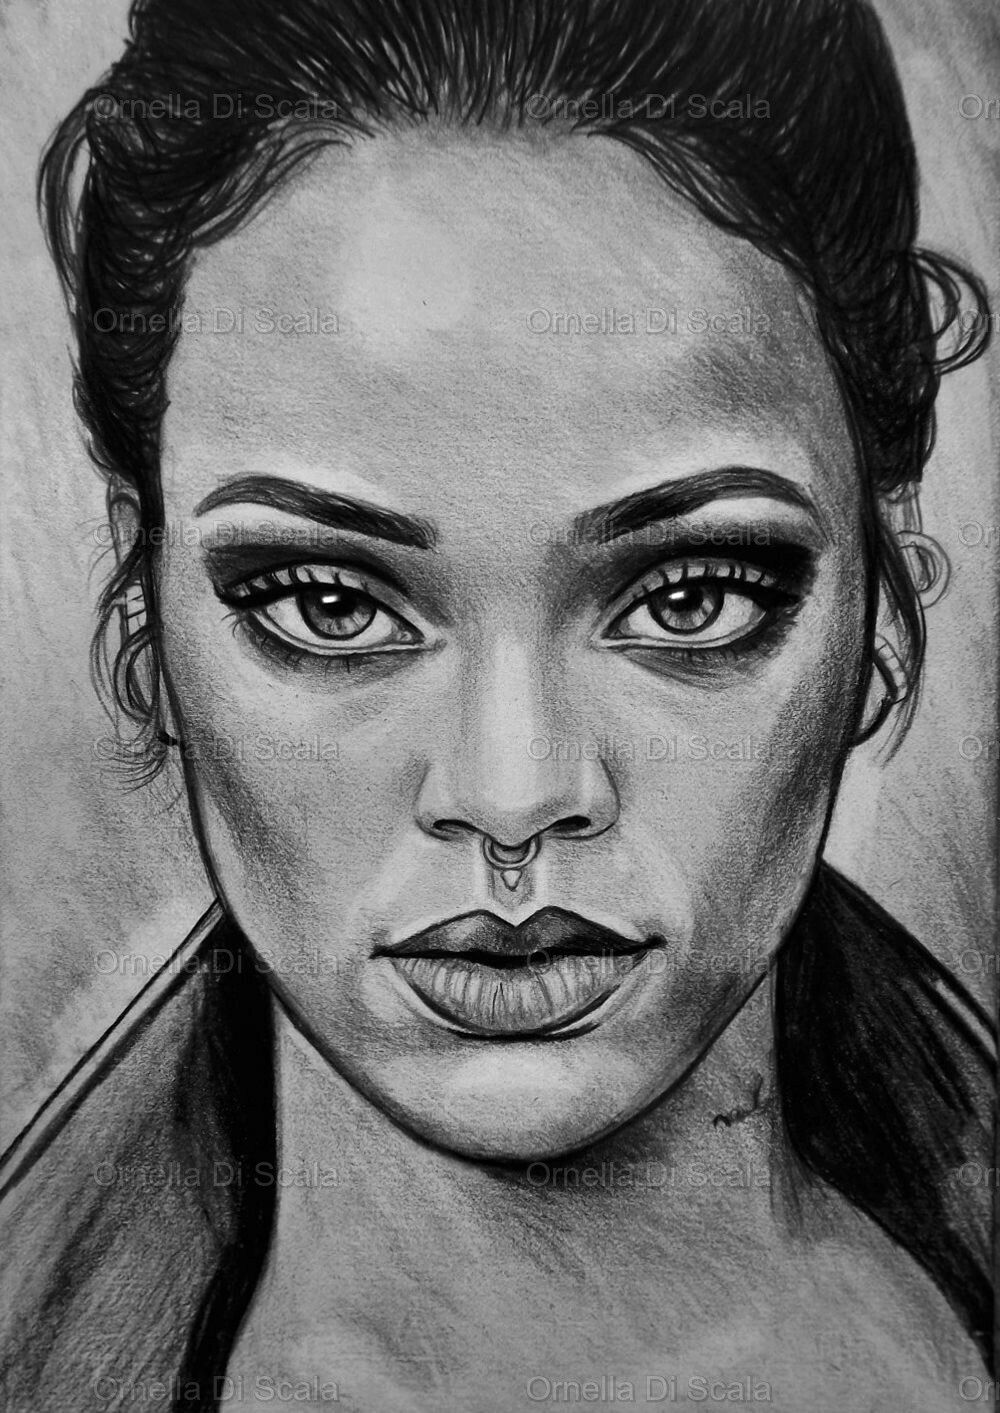 Rihanna Sketch How To Draw Hands Celebrity Drawings Portrait Drawing